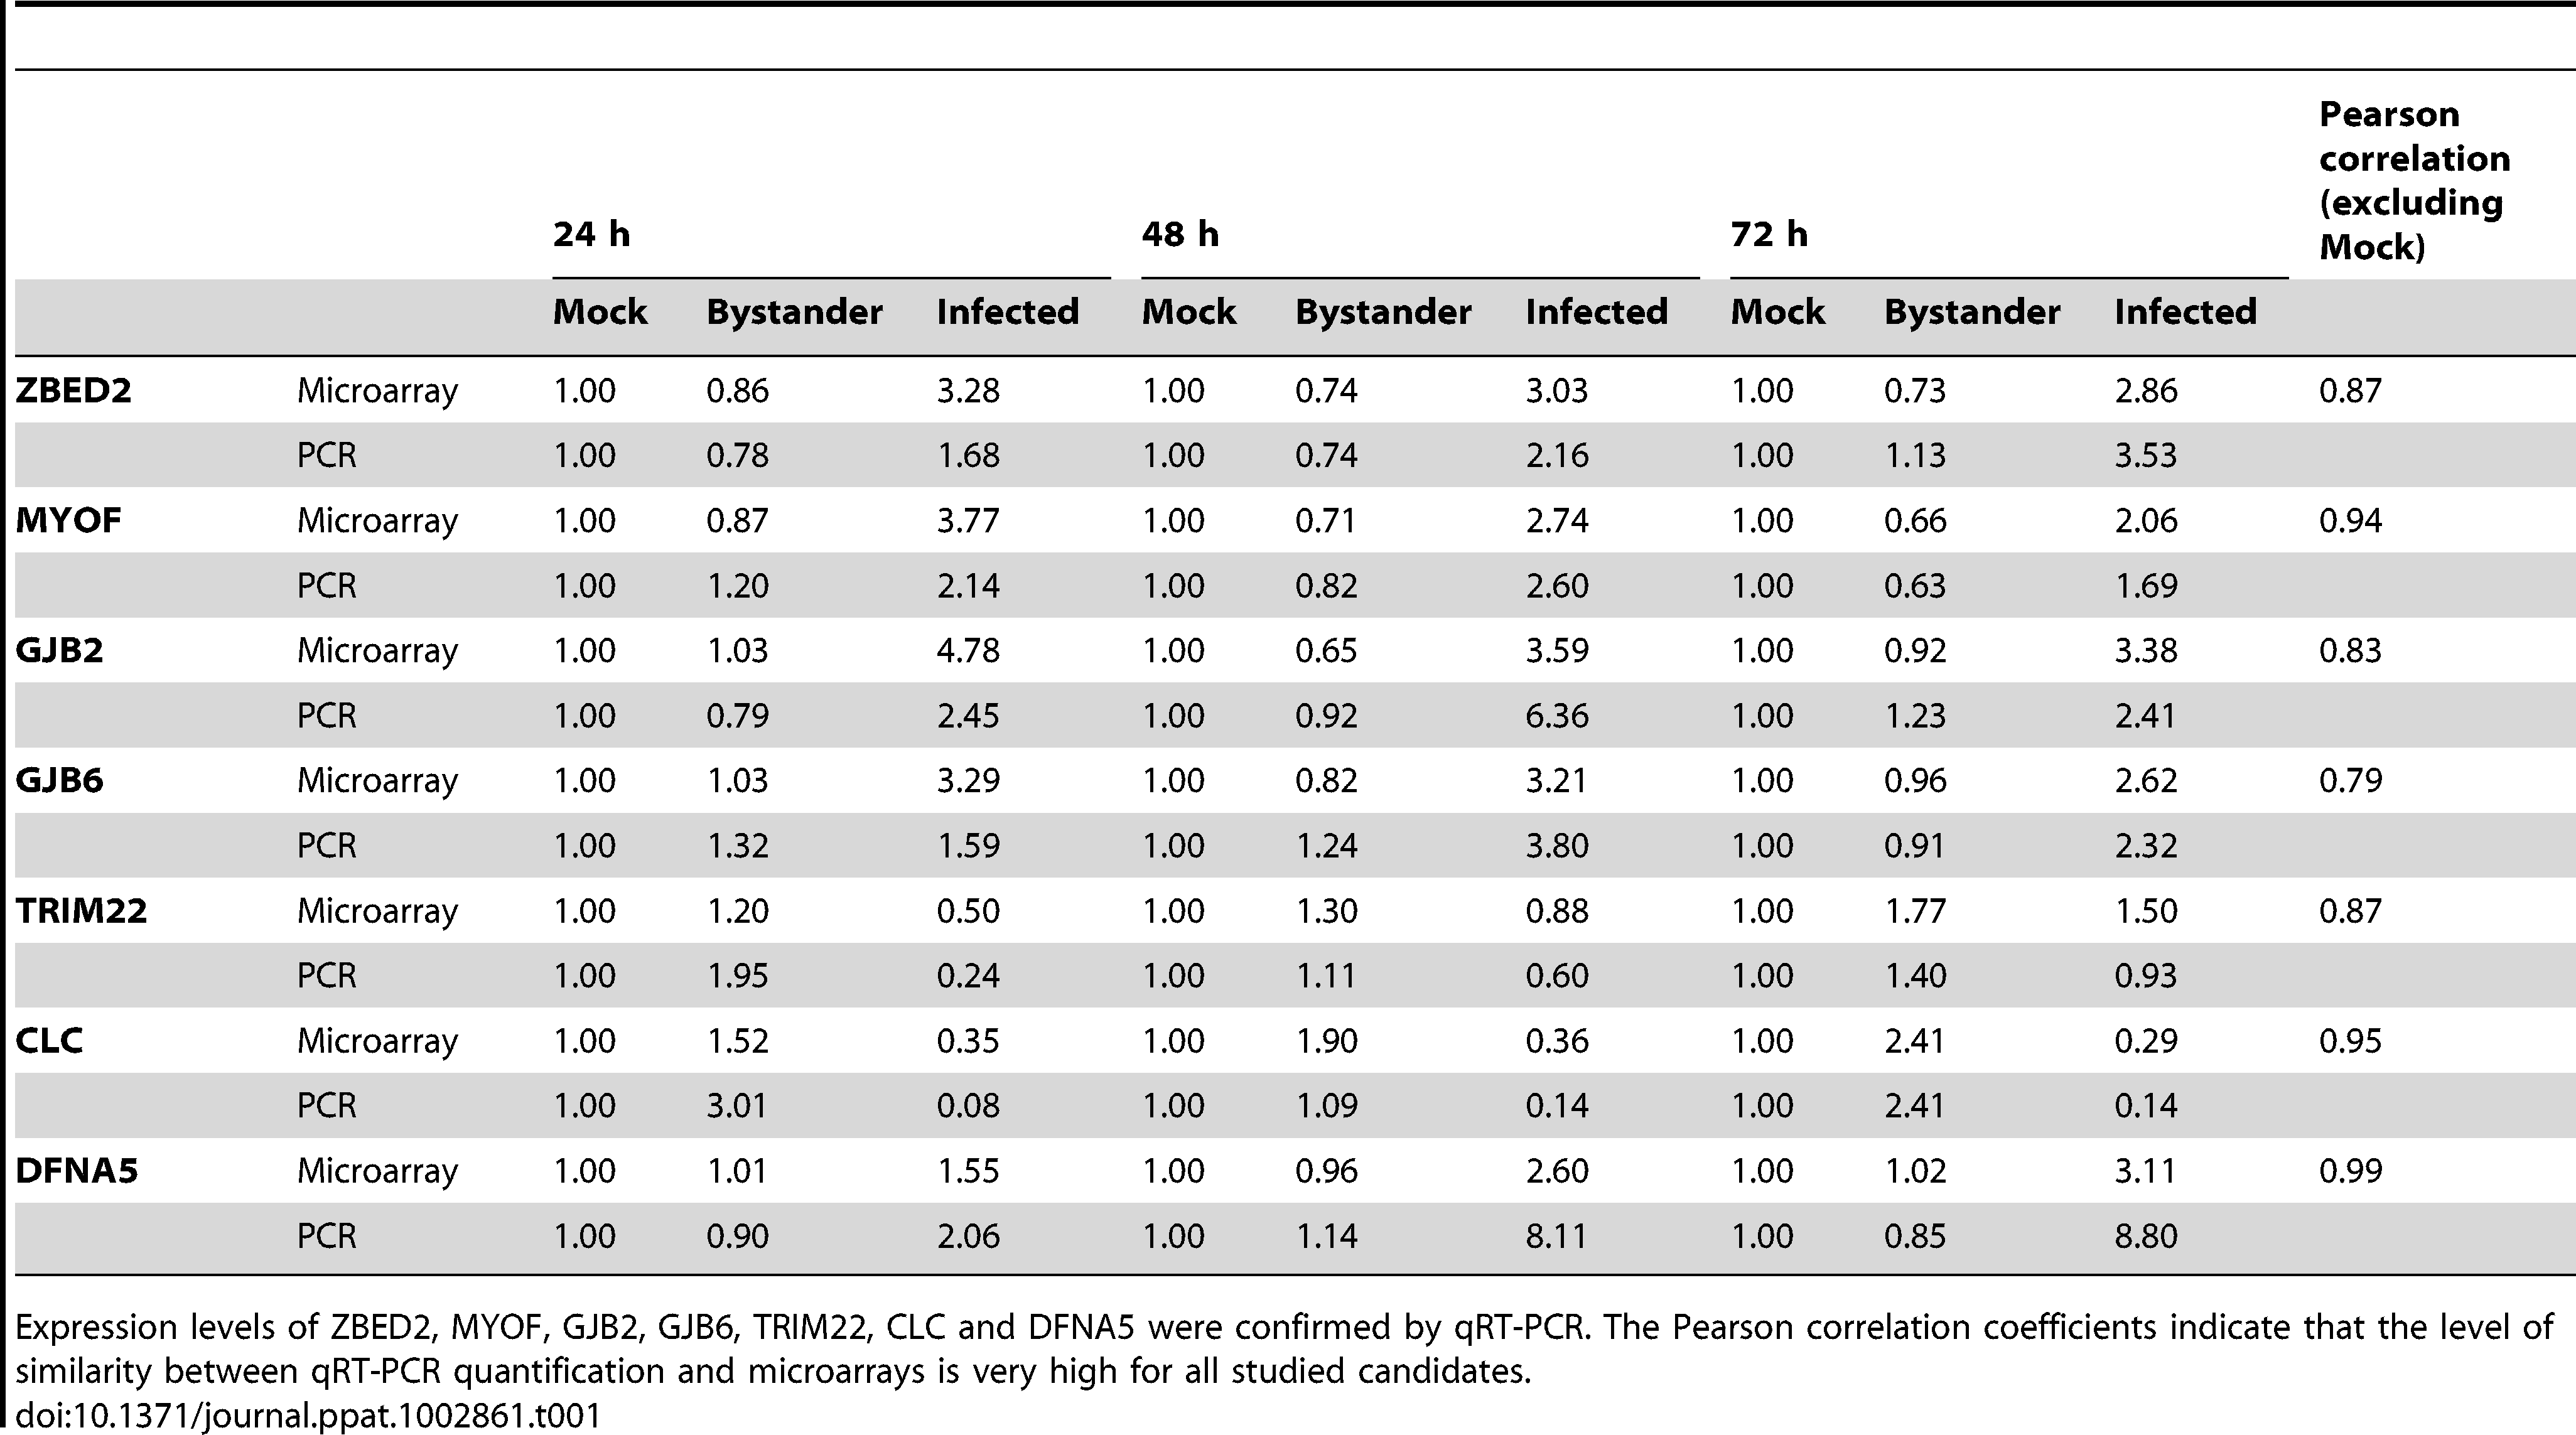 qRT-PCR confirmation of genes of interest identified in the dataset.